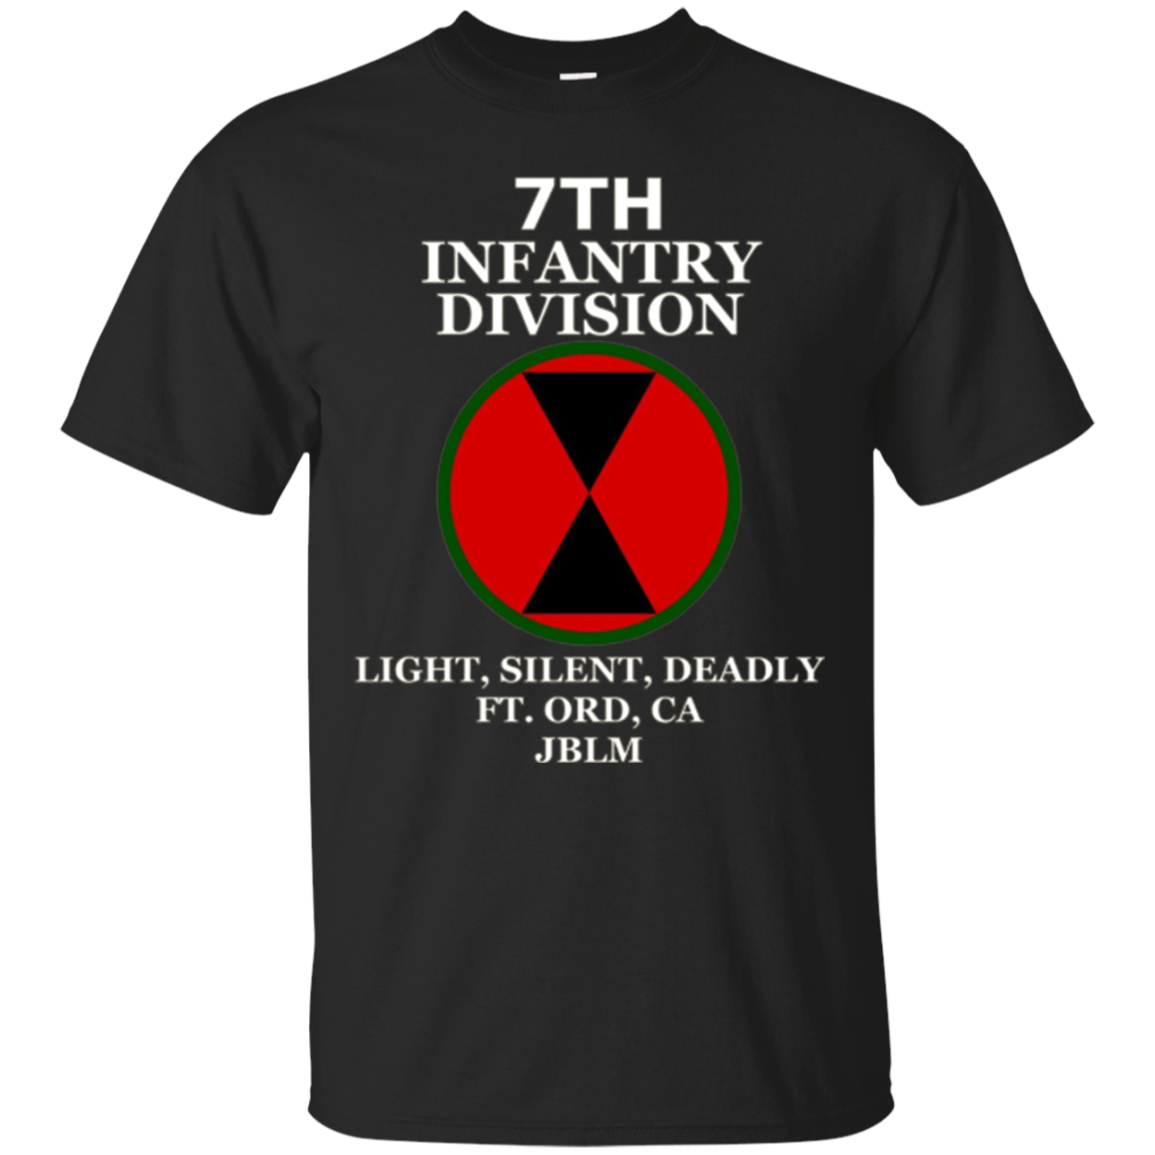 7th Infantry Division - Light, Silent, Deadly Army T-Shirt